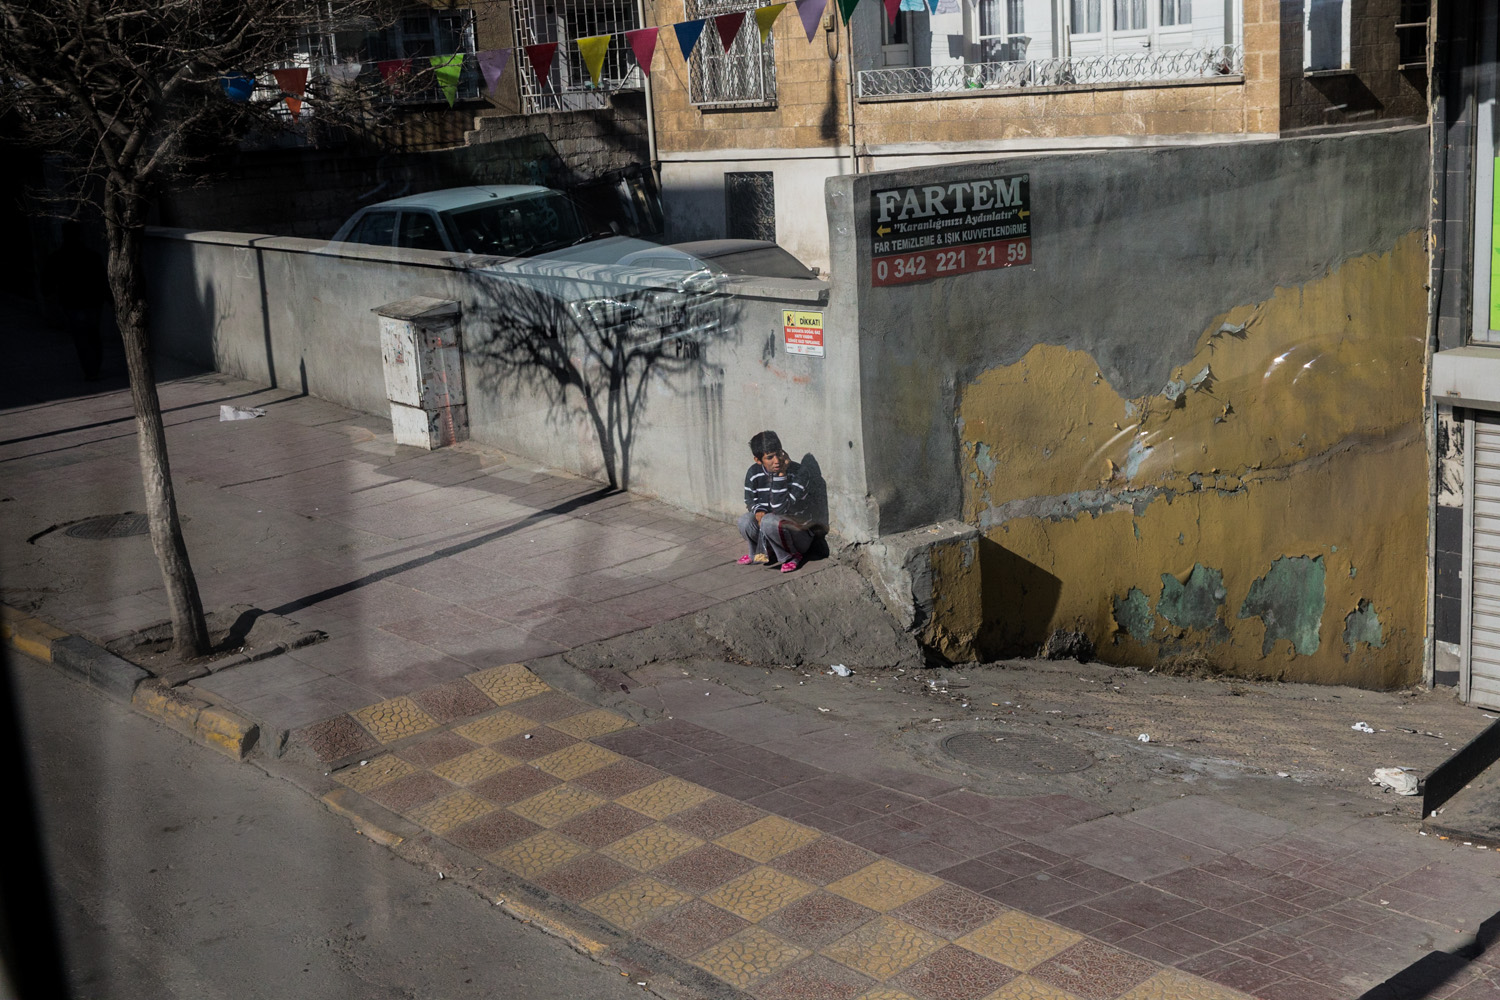 View from the Friendship School bus in Gaziantep, by Mieke Strand